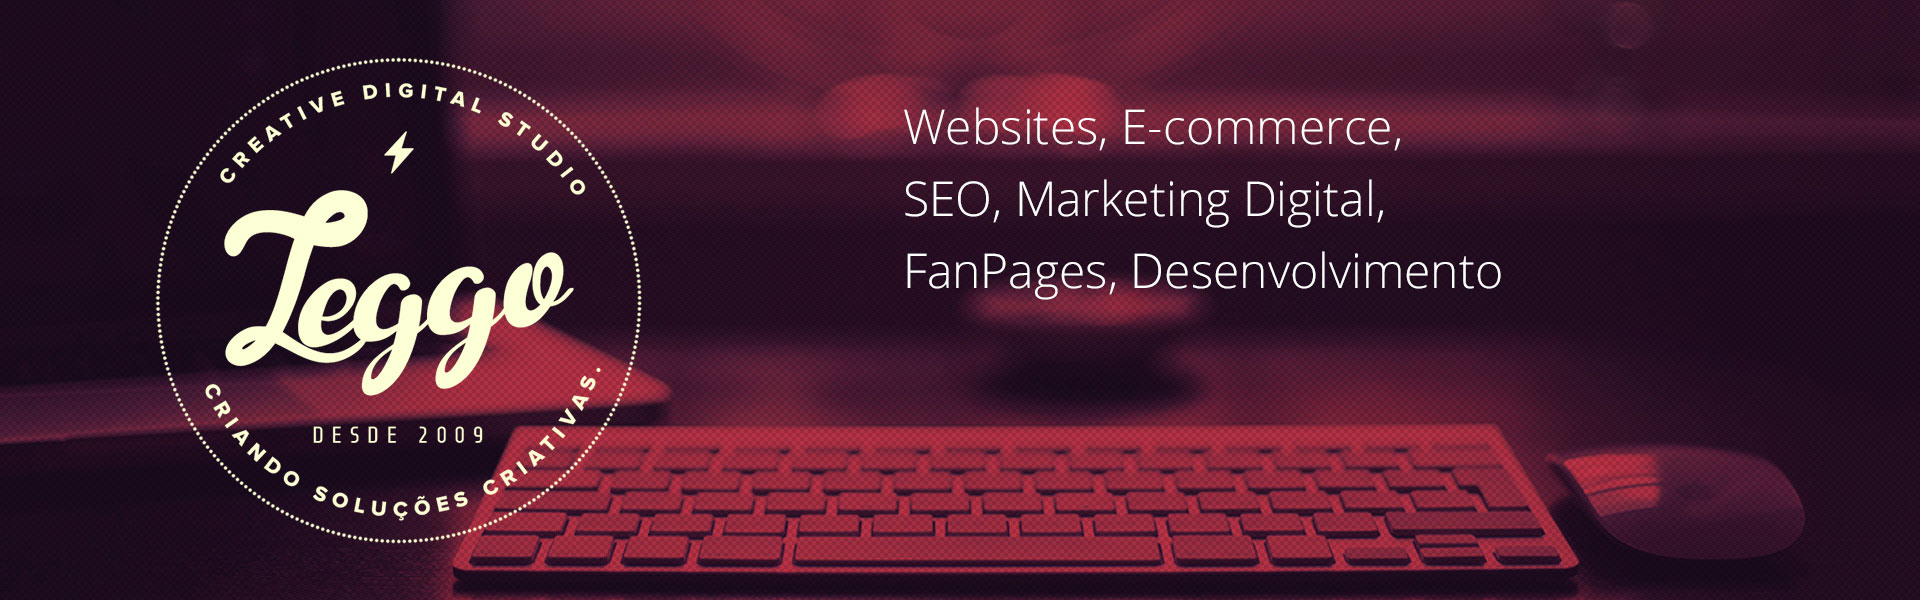 Agência Leggo - Websites, E-commerce, SEO, Marketing Digital, FanPages, Desenvolvimento